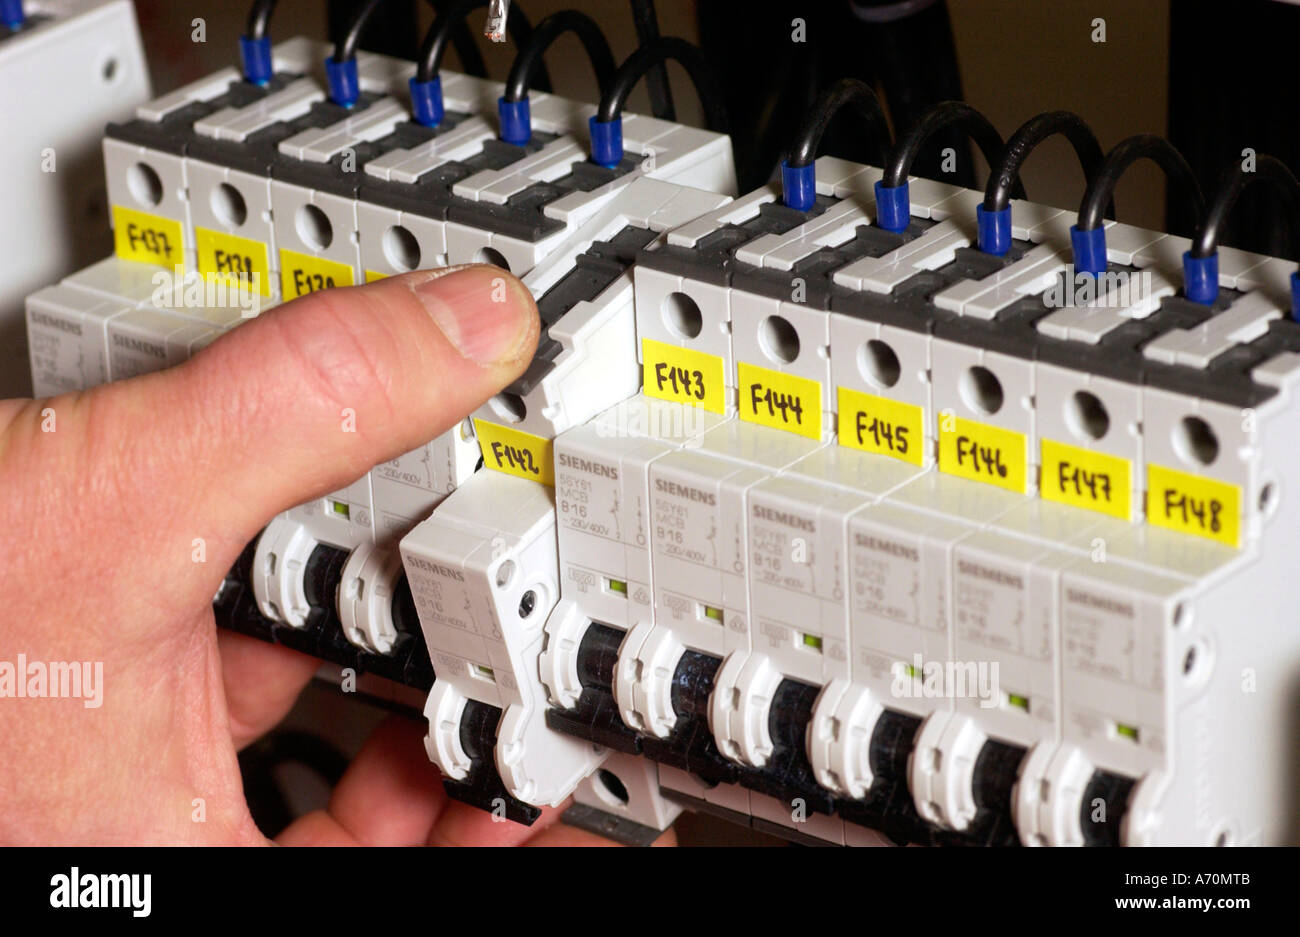 hight resolution of building of switchgears in a school installations of the current distributor fuse box electrical safety devices